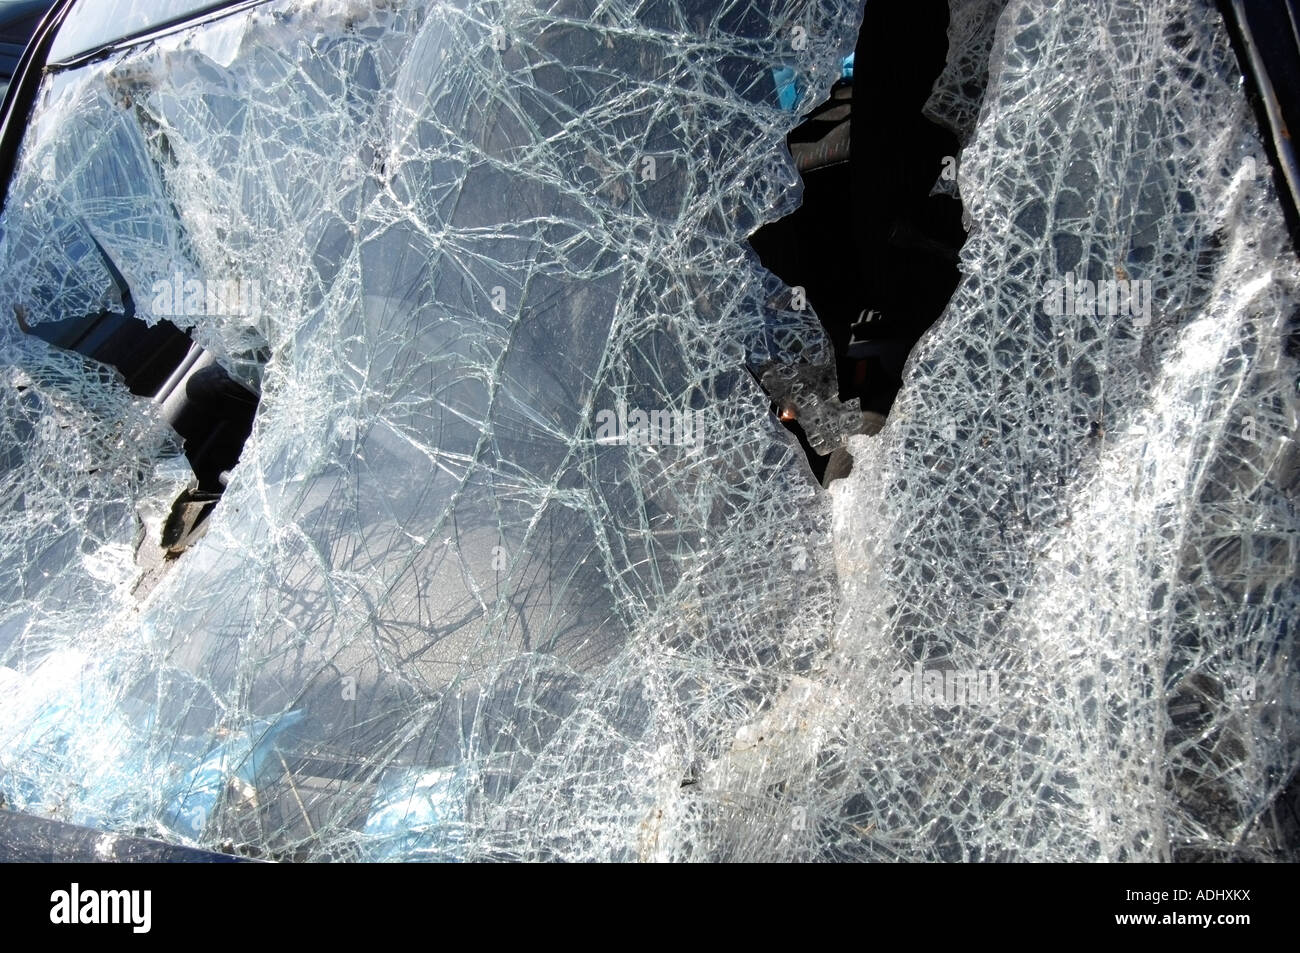 The shattered windscreen of a car wrecked in a road accident - Stock Image